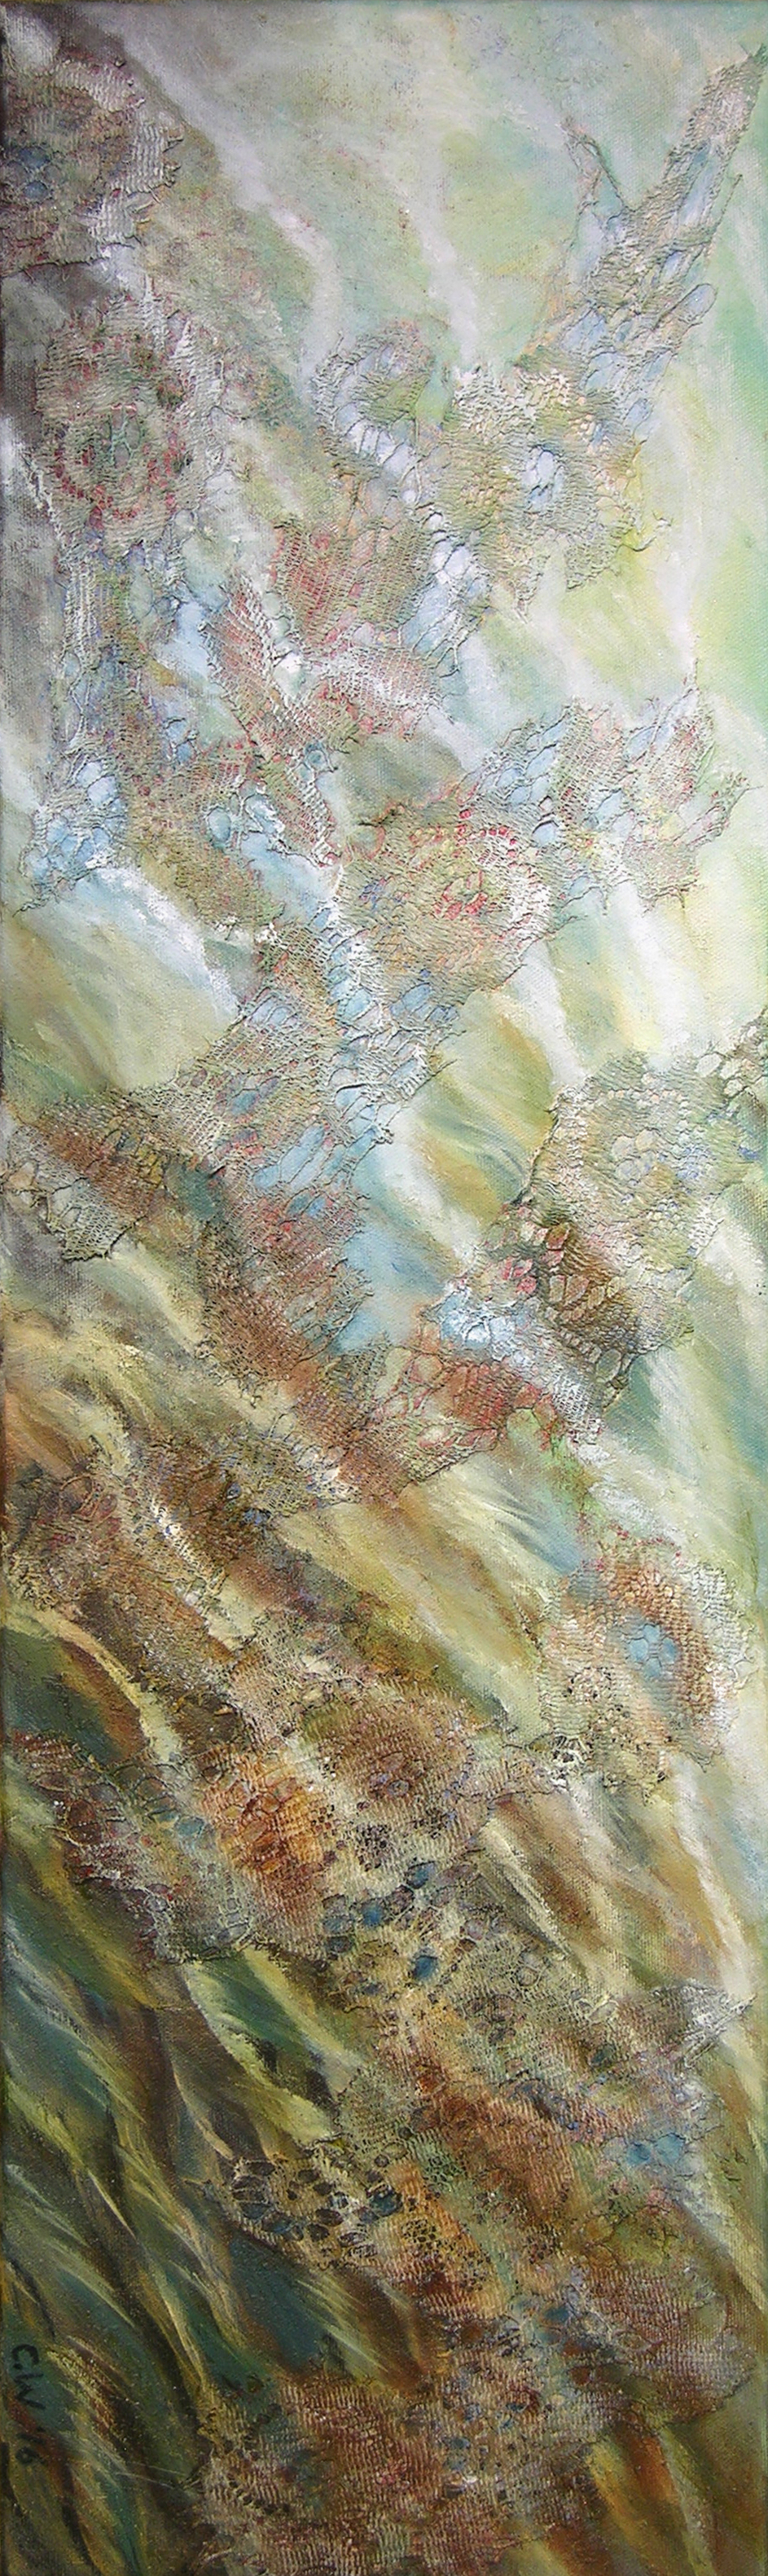 Waters Edge seaweed 23 x 76cm.jpg